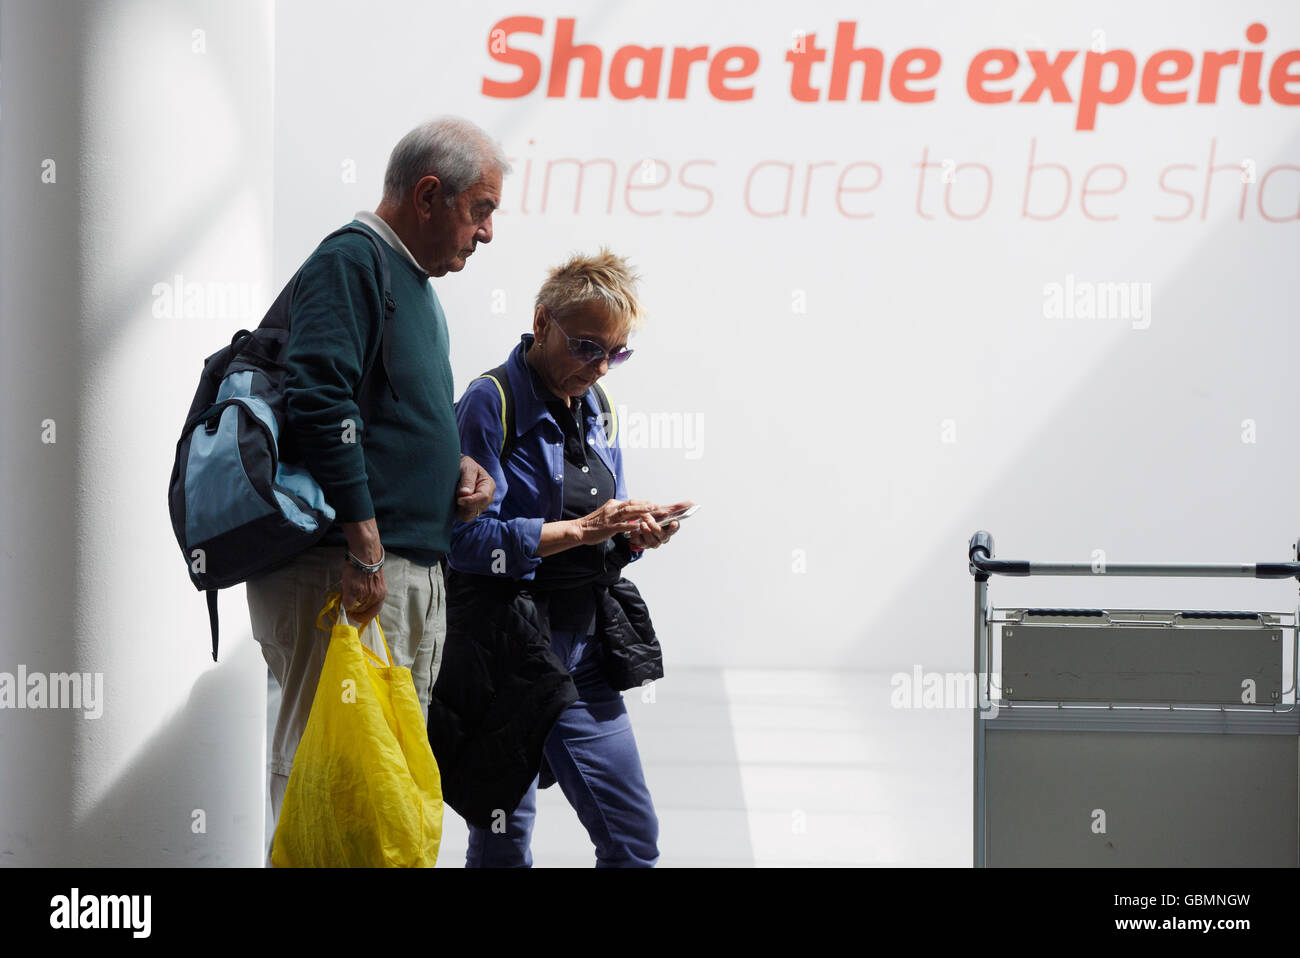 A couple using a smart phone, Keflavik International Airport, Keflavik, Iceland - Stock Image